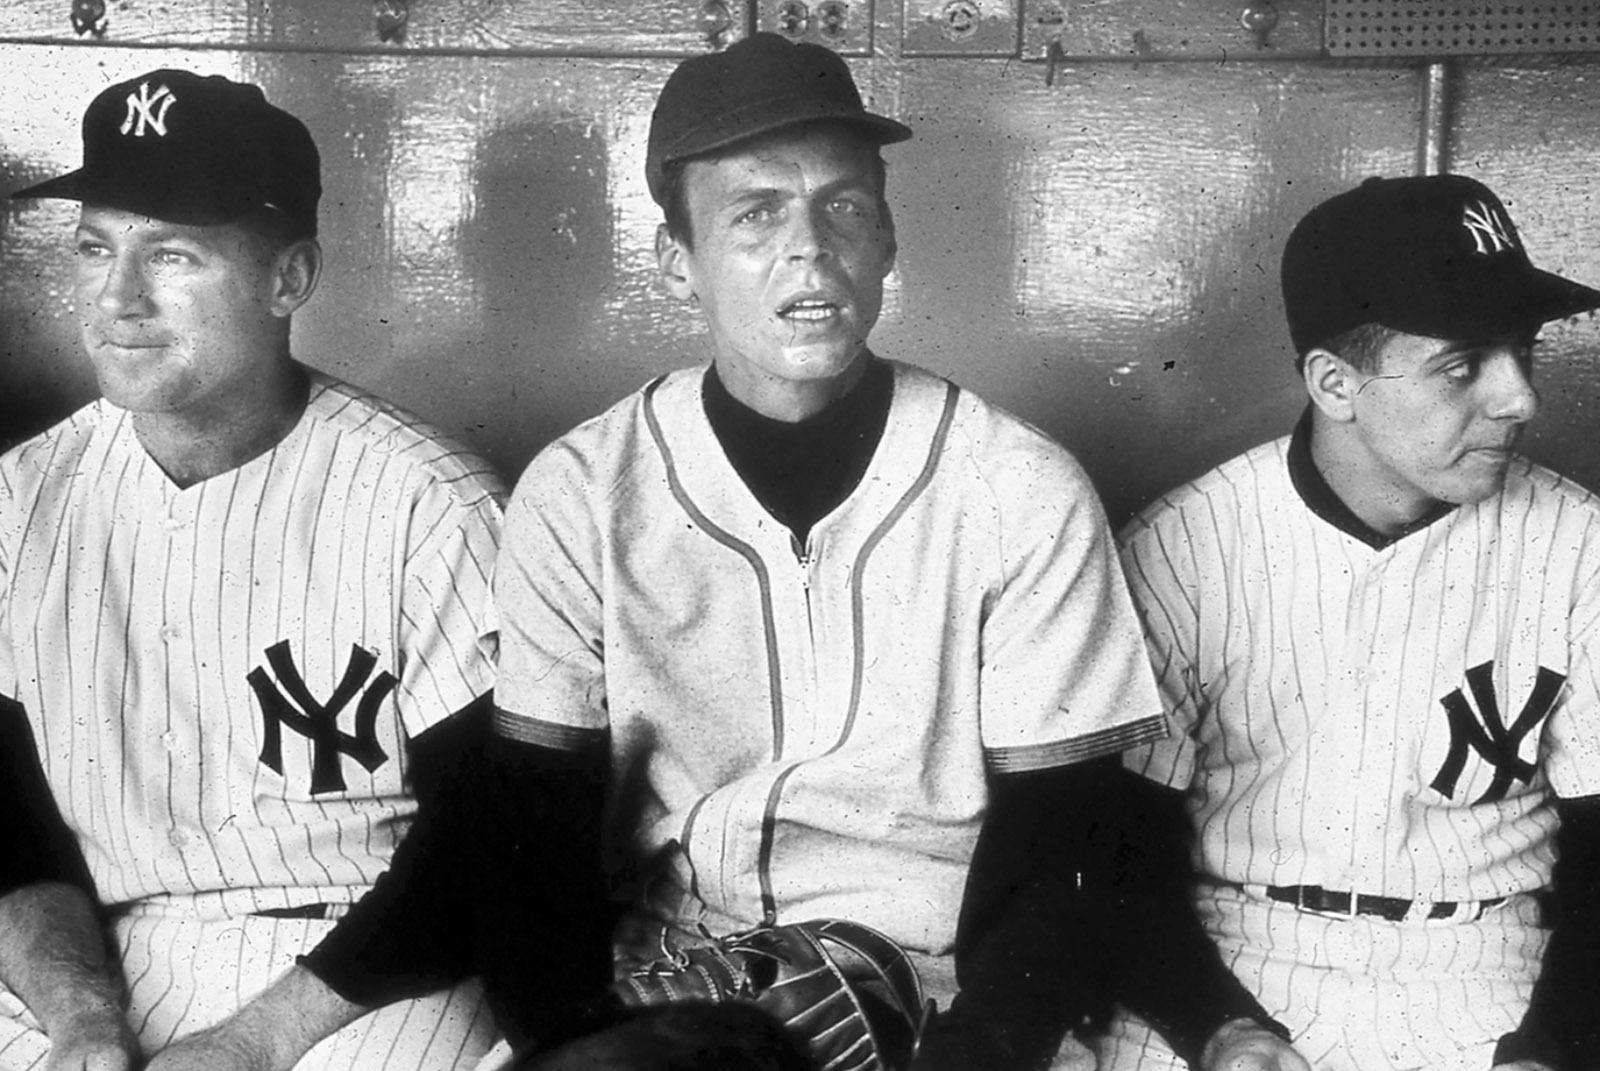 'Flanked by Whitey Ford and the Yankee batboy just after my ordeal,' Plimpton writes in Out of My League. 'The photograph was snapped as I dropped down between them—providing an accurate study of shock, in my case, and justified amusement from the ballplayers. They were not at all displeased that their profession had treated me as roughly as it had.'